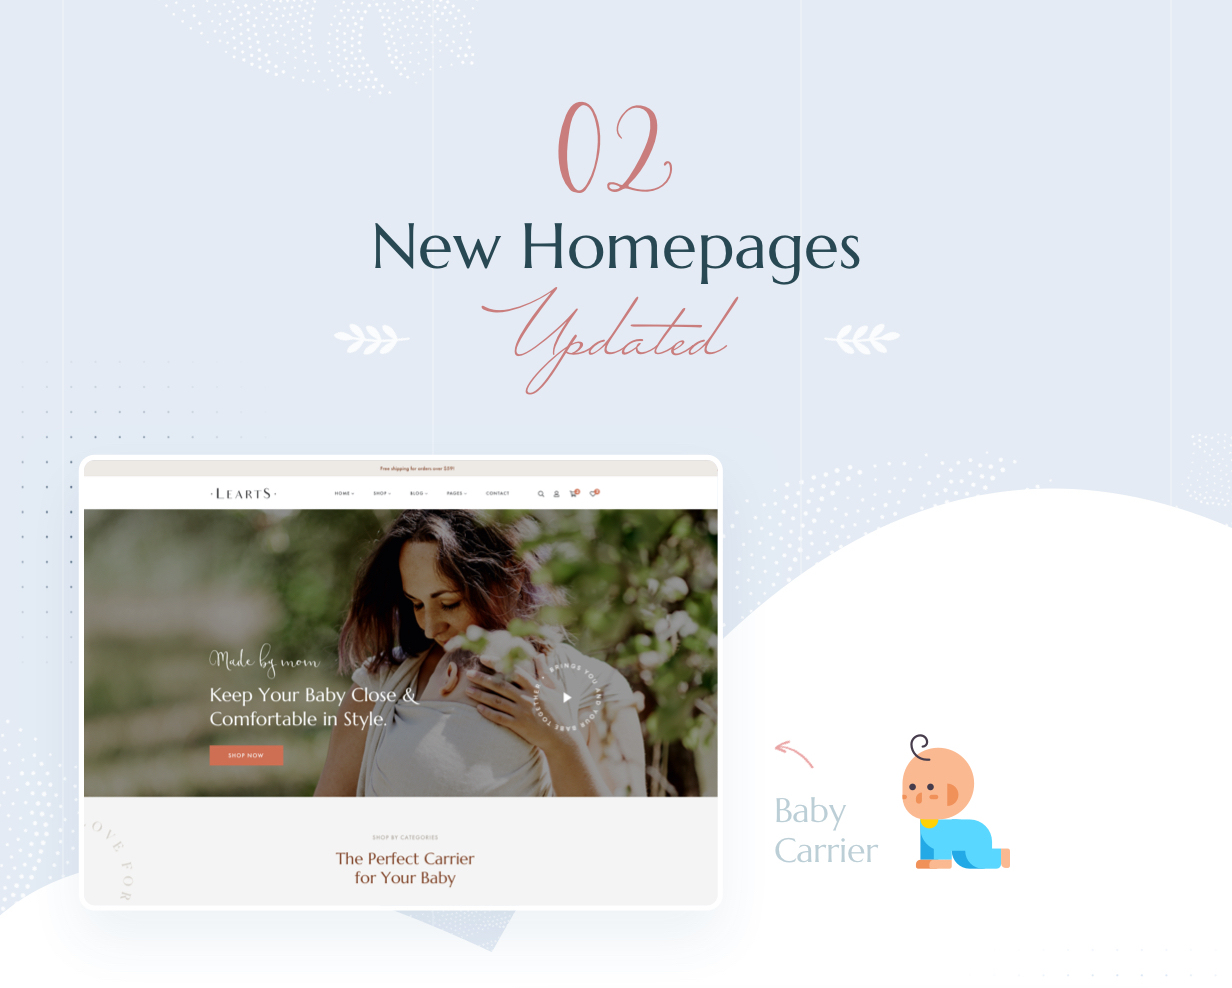 LeArts - Handmade Shop WooCommerce WordPress Theme - 4